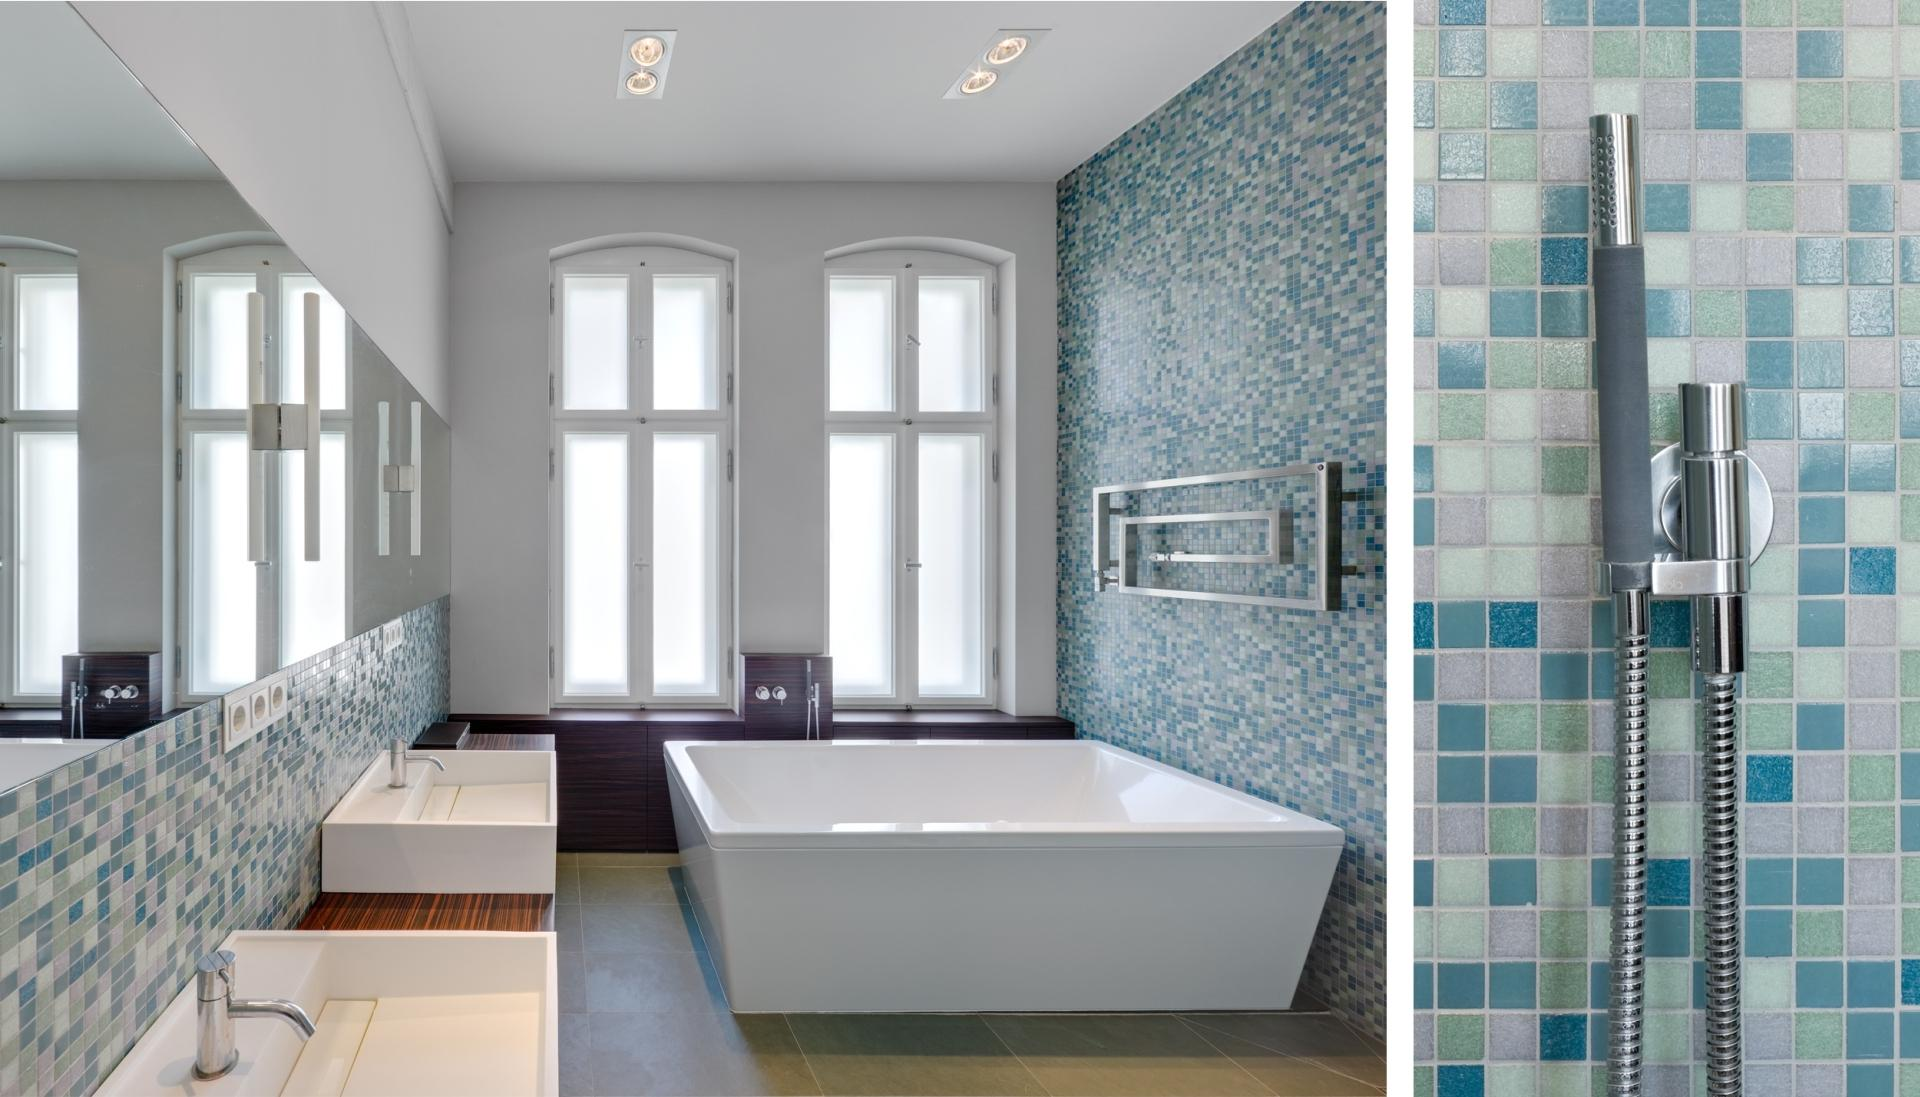 Spreebogen #bad #badewanne ©BERLINRODEO interior concepts GmbH